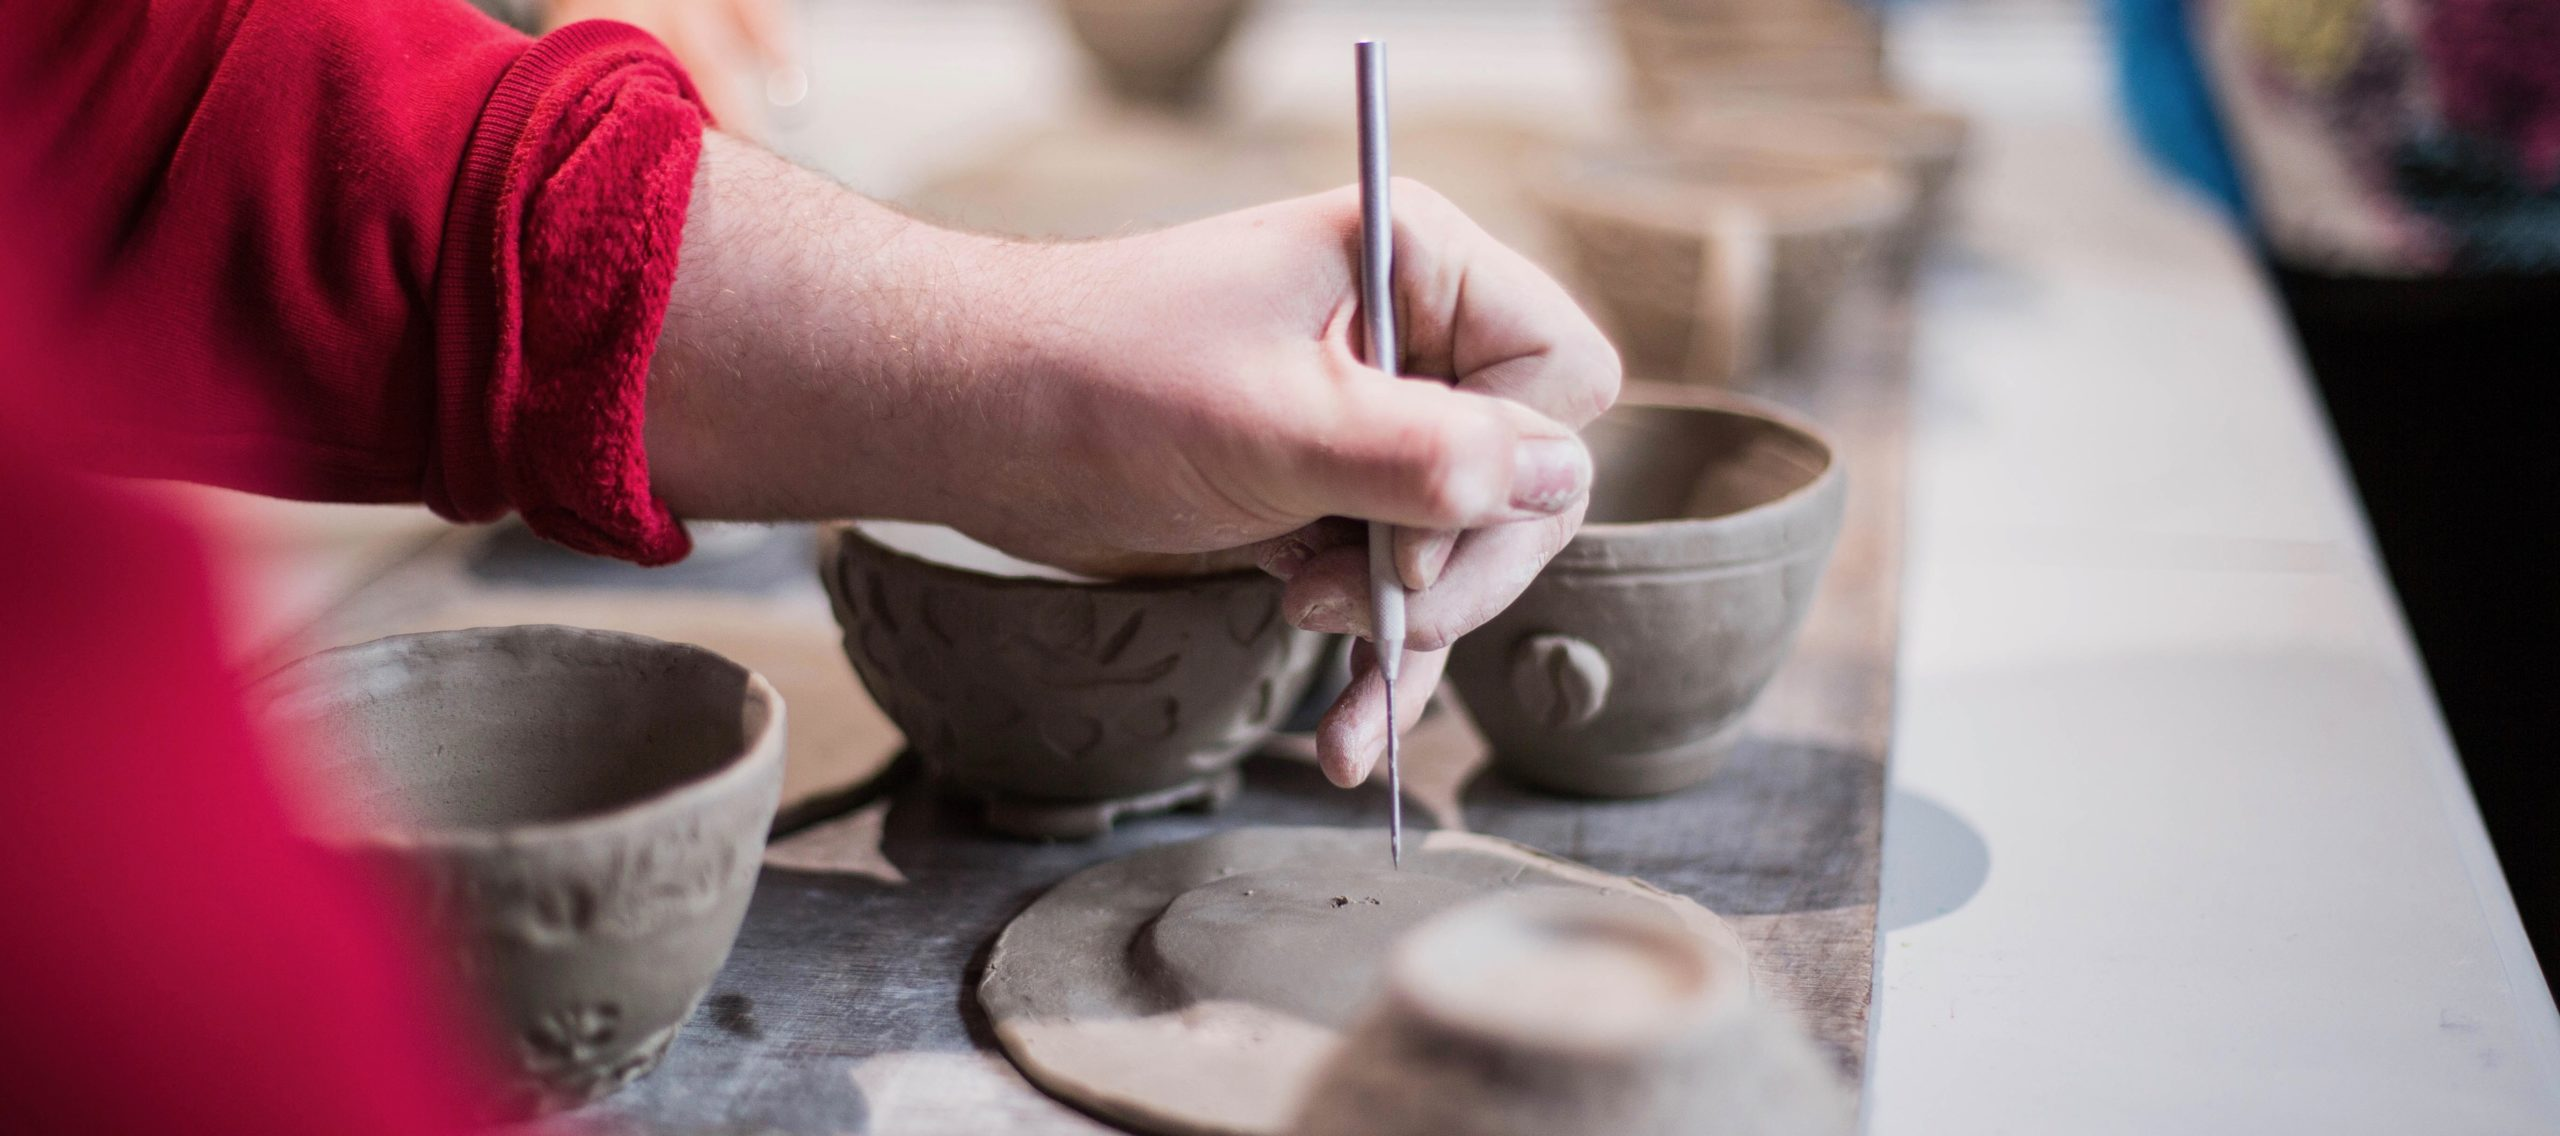 Close up of a clay artist working on making details in a clay plat with a clay knife.